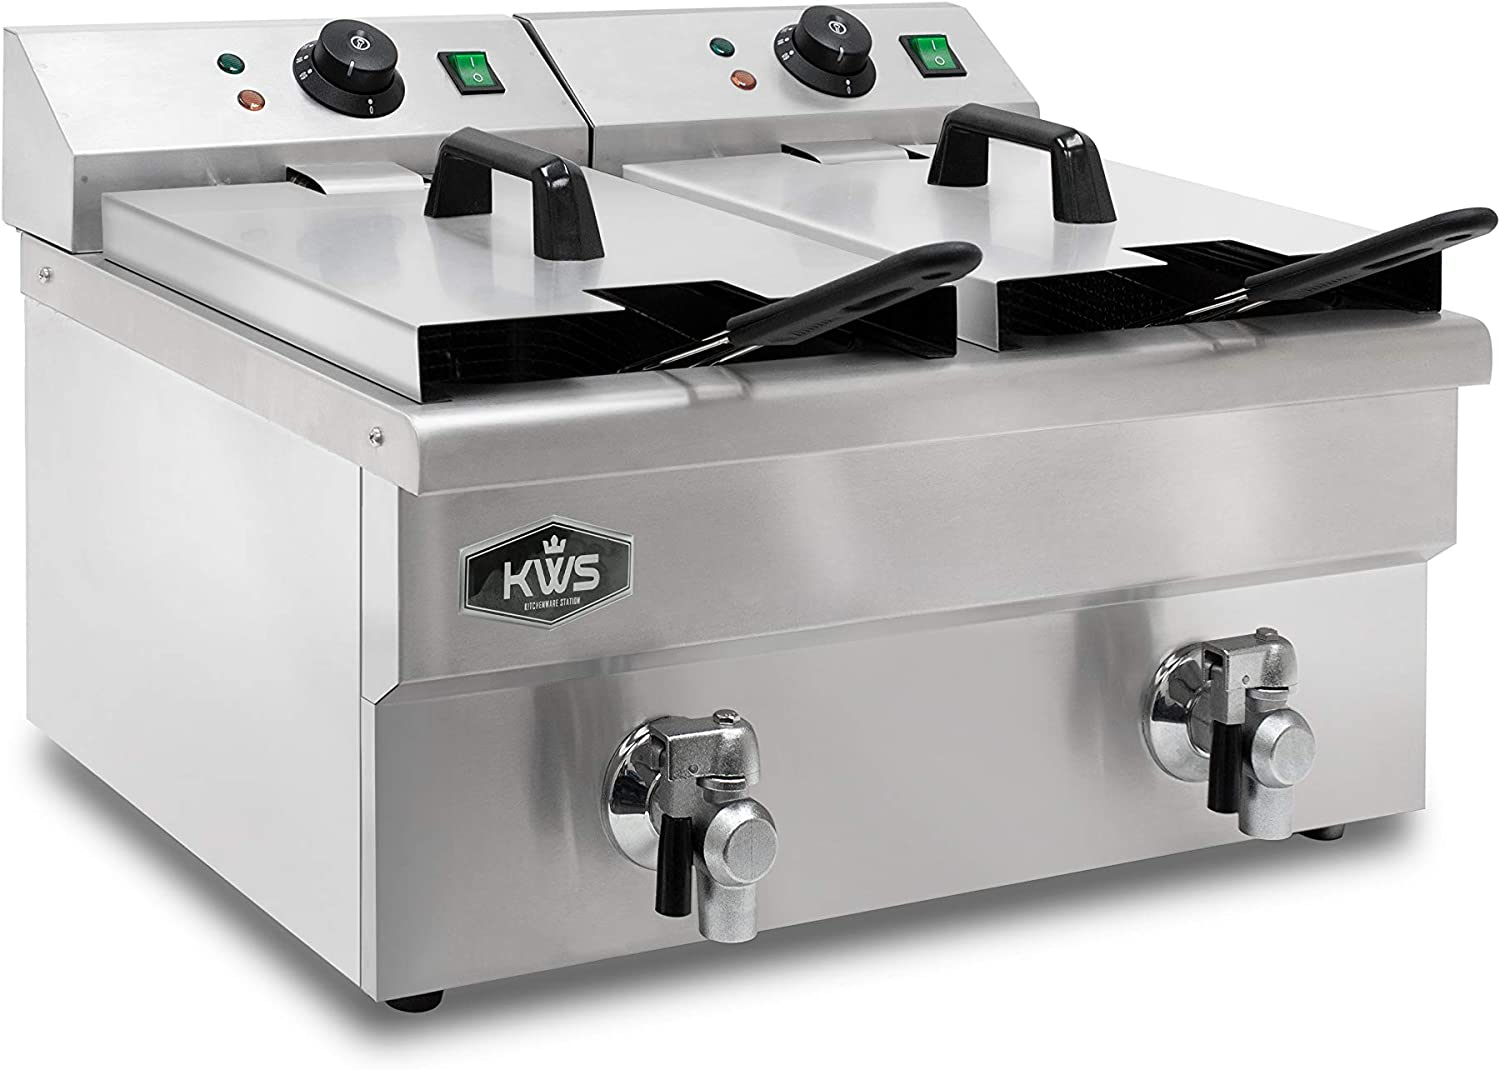 KWS DY-22 OFFer Sales Commercial 3500W Electric 22.7L S Stainless Deep Fryer